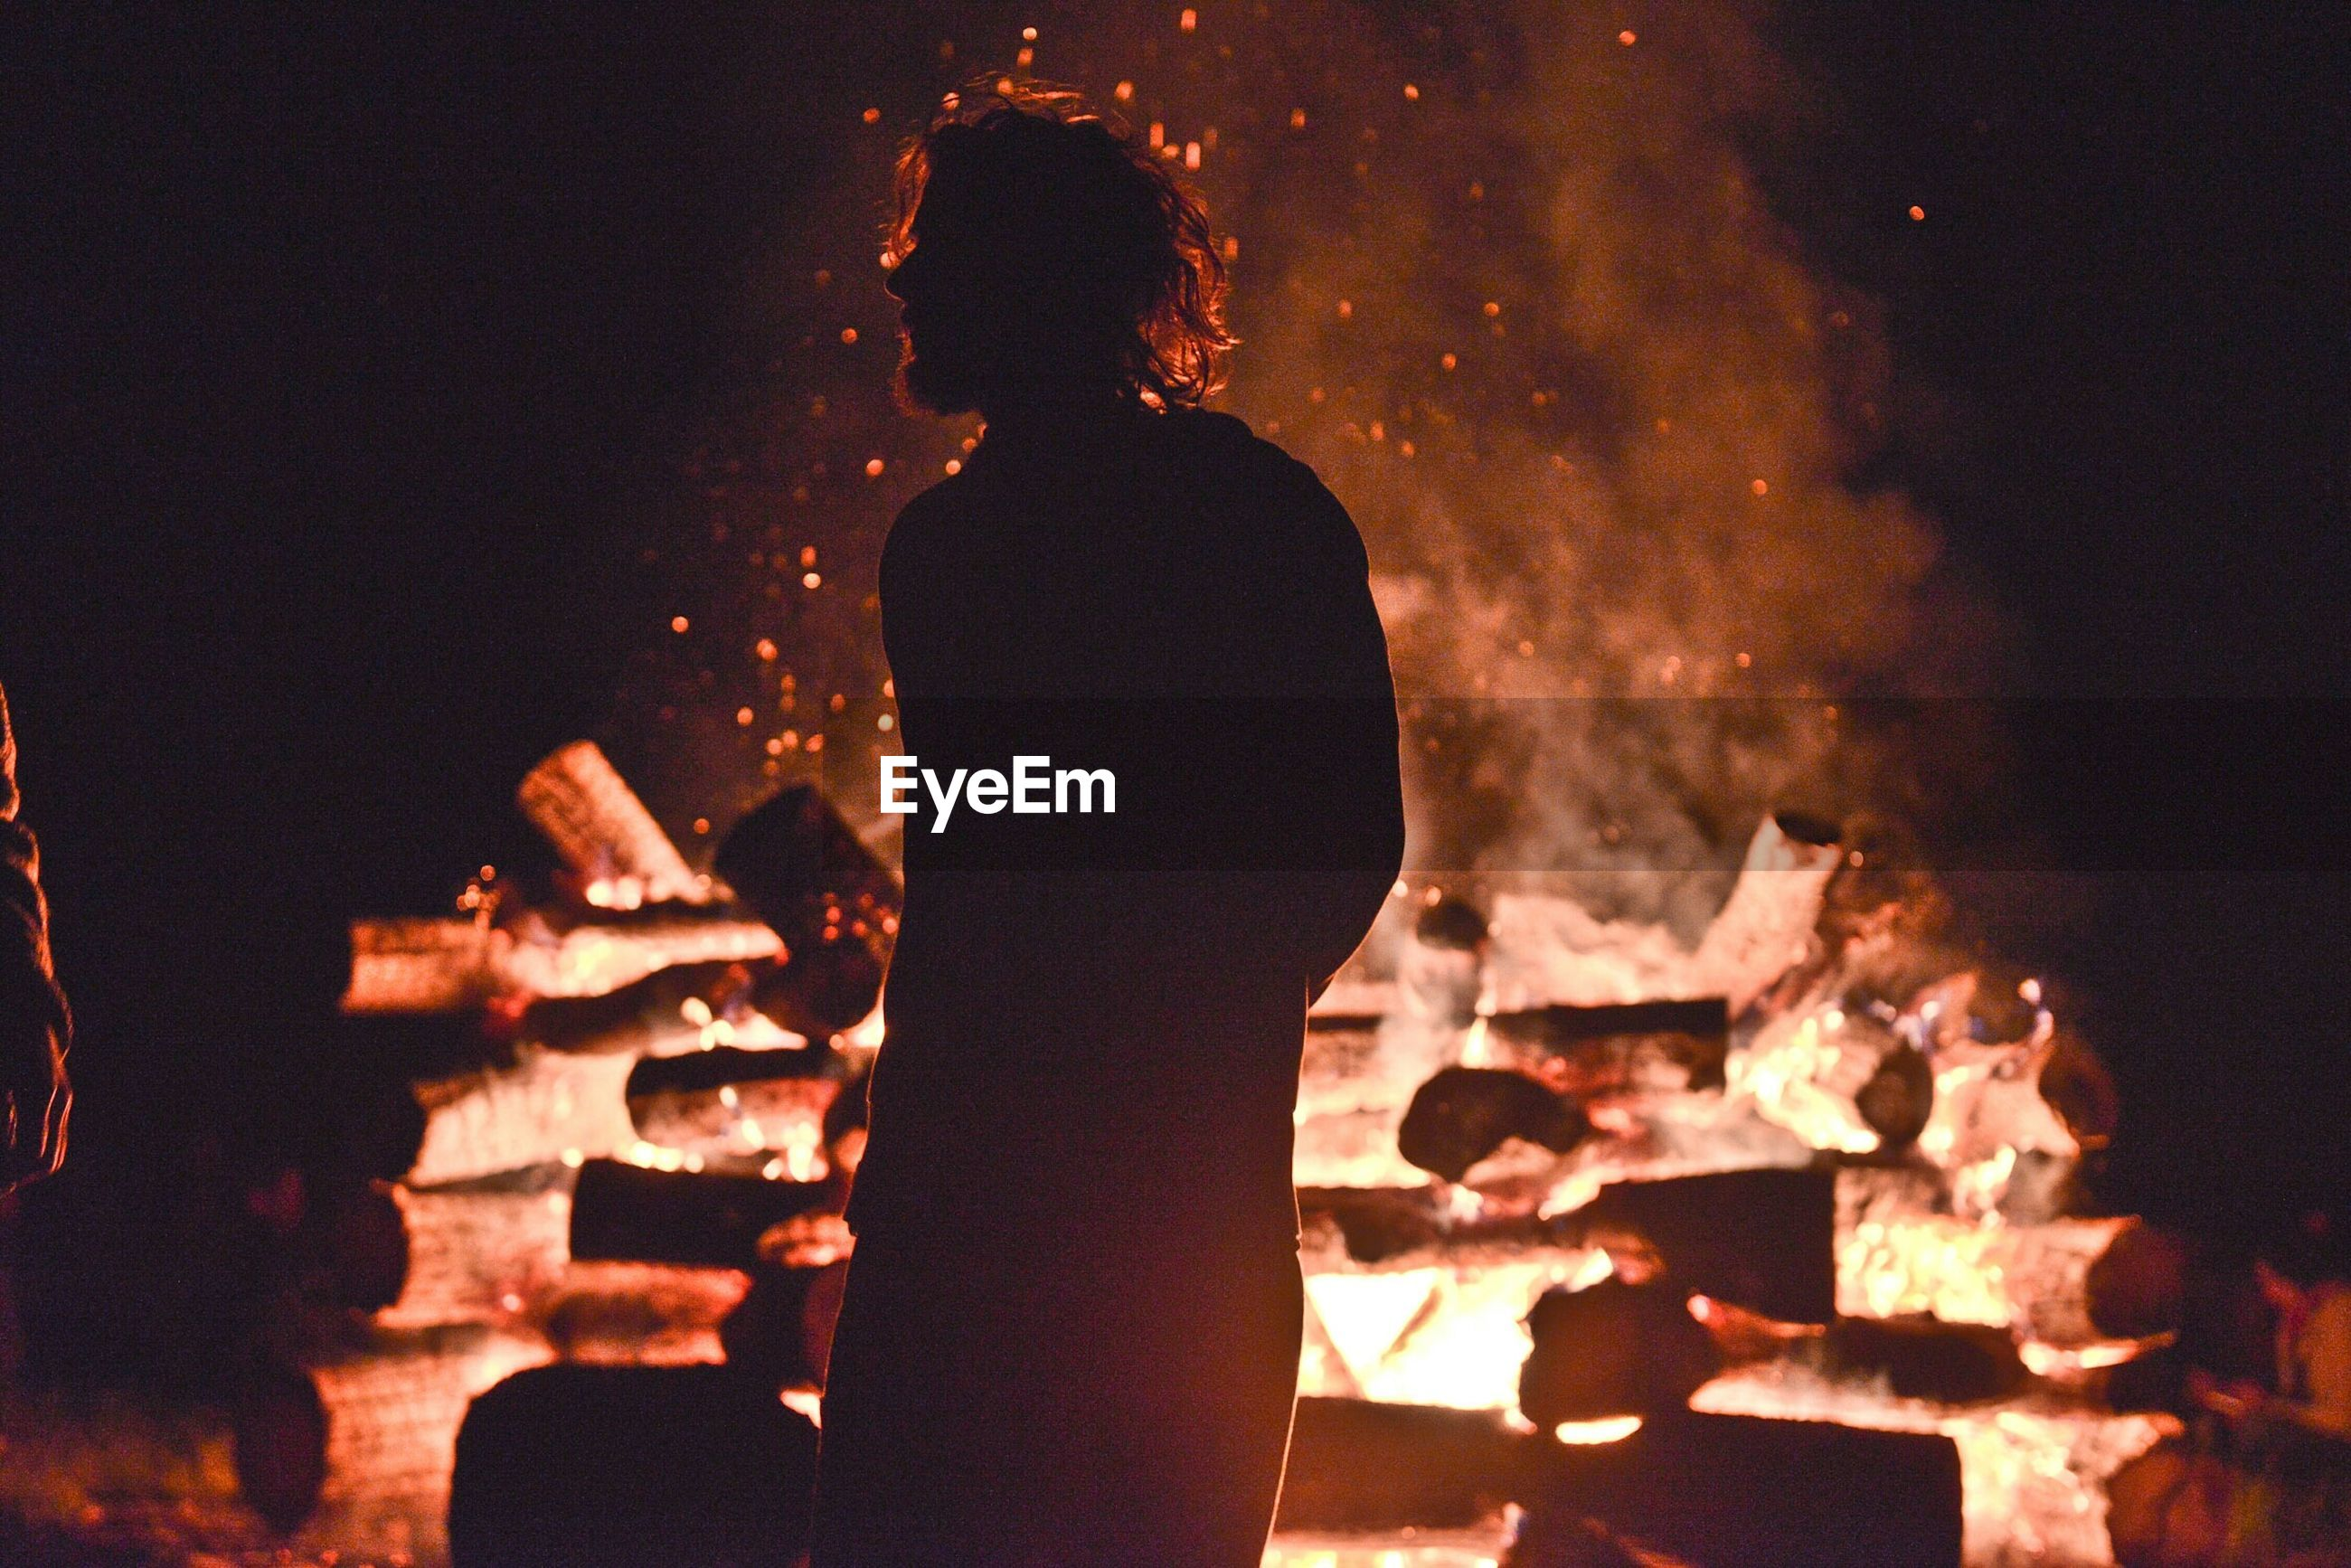 Man standing by bonfire on field at night